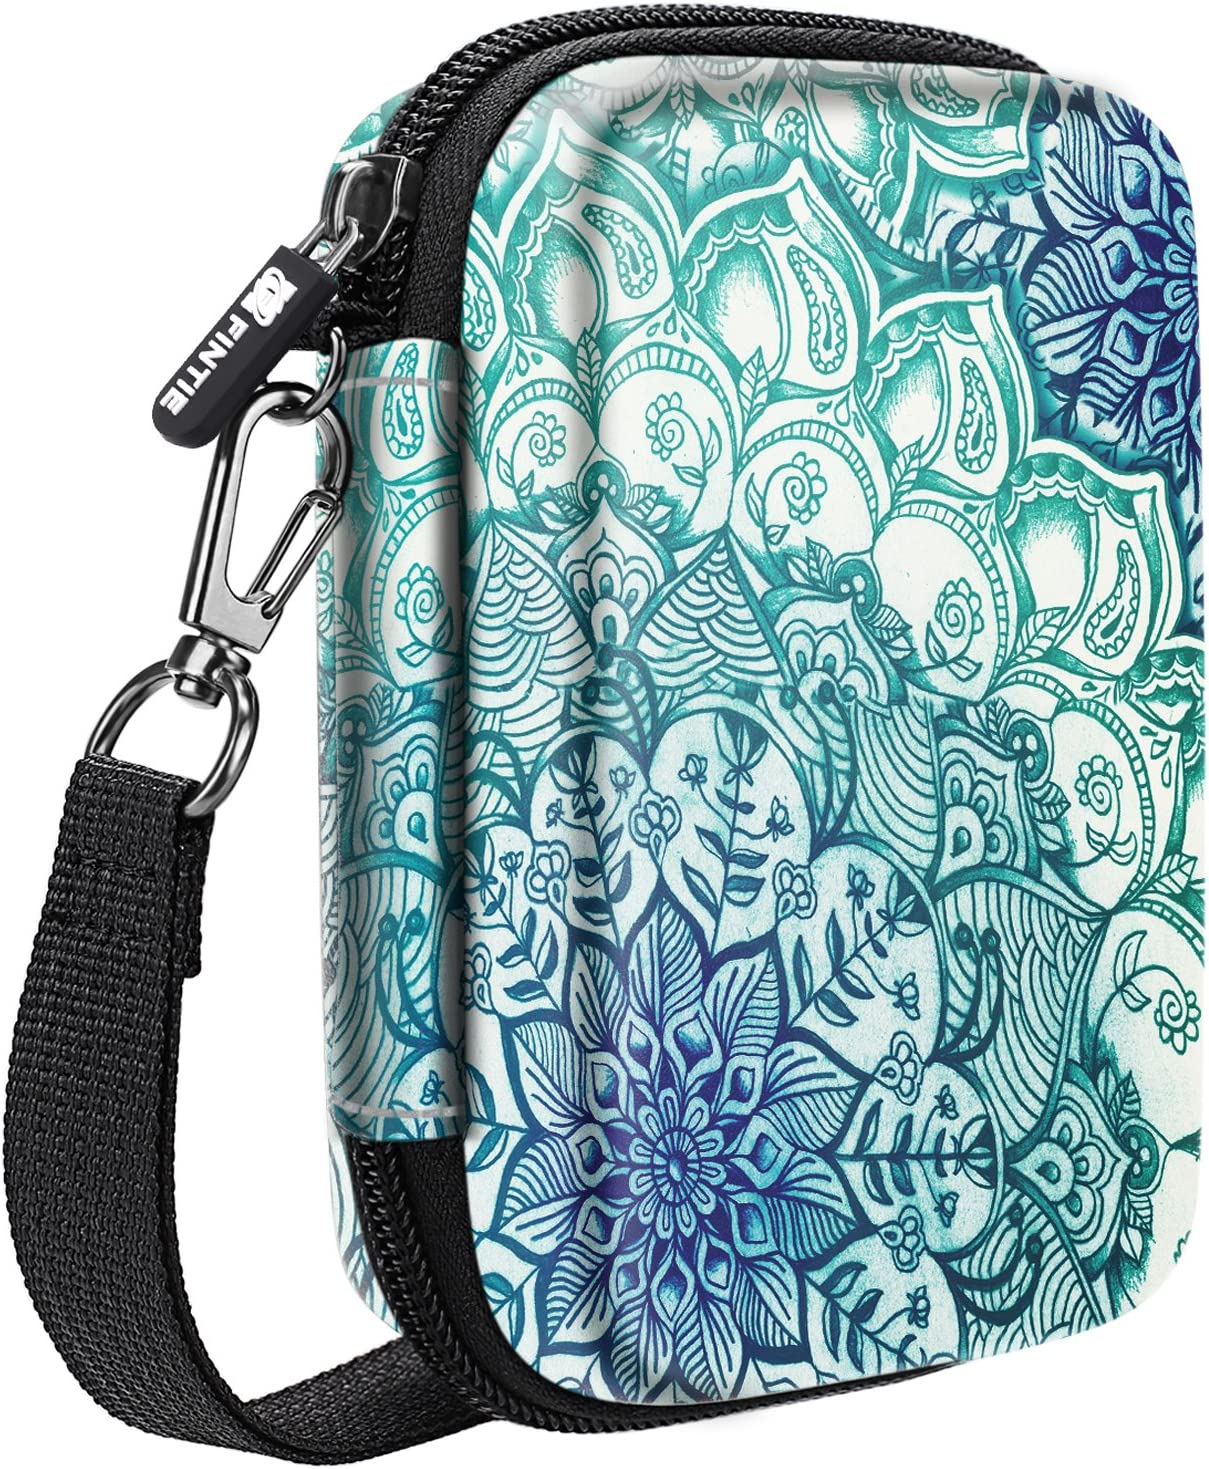 Fintie Carry Case Compatible with Polaroid Snap/Snap Touch Instant Camera, Polaroid Zip/HP Sprocket 2nd Edition Printer, HP Sprocket 2-in-1, Hard EVA Shockproof Storage Travel Bag (Emerald Illusions)